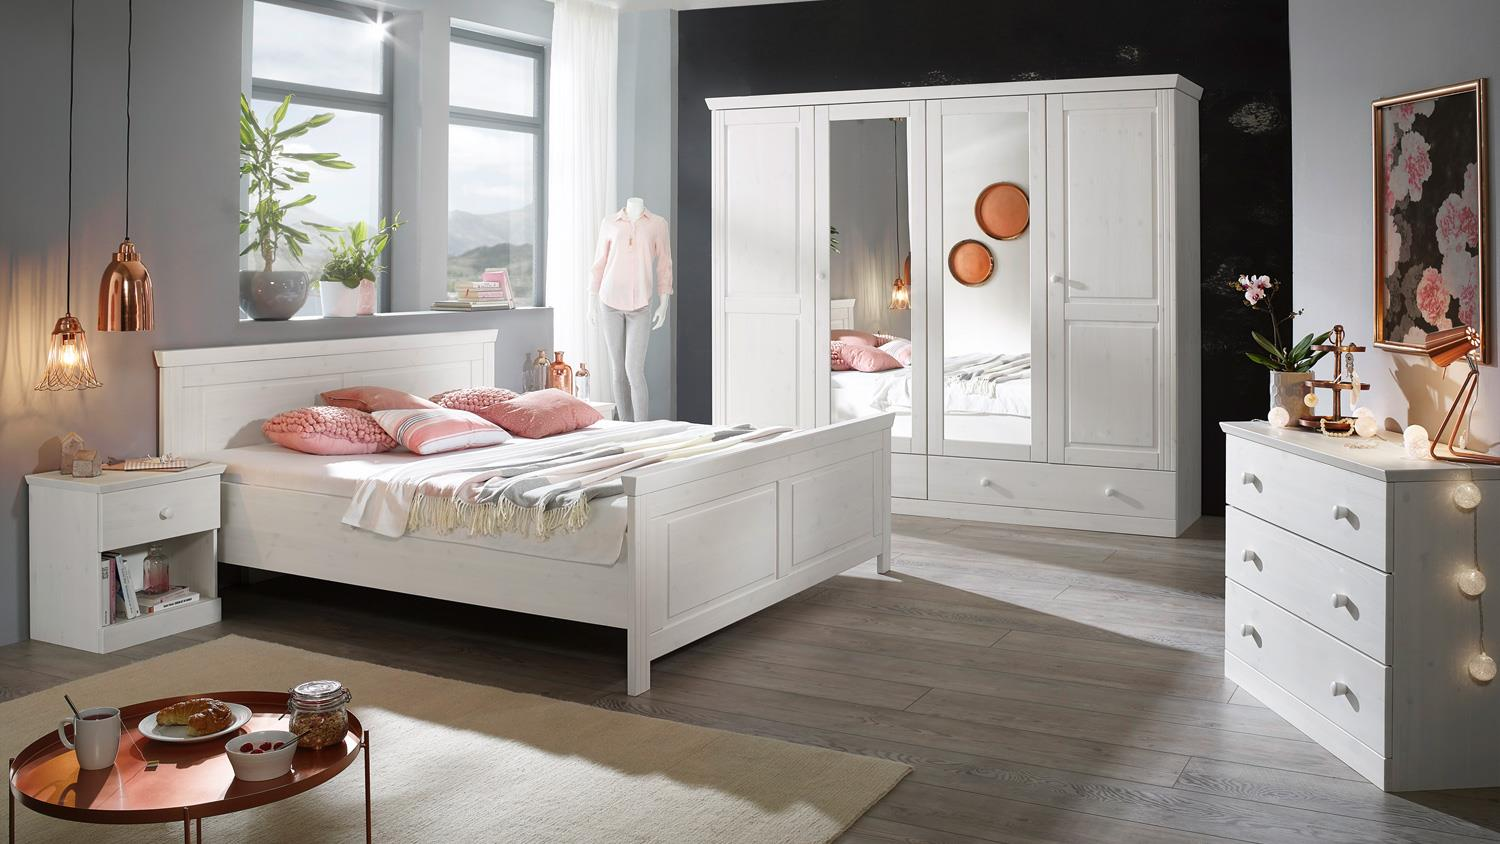 landhausstil genia kleiderschrank mit spiegel kiefer massiv wei. Black Bedroom Furniture Sets. Home Design Ideas